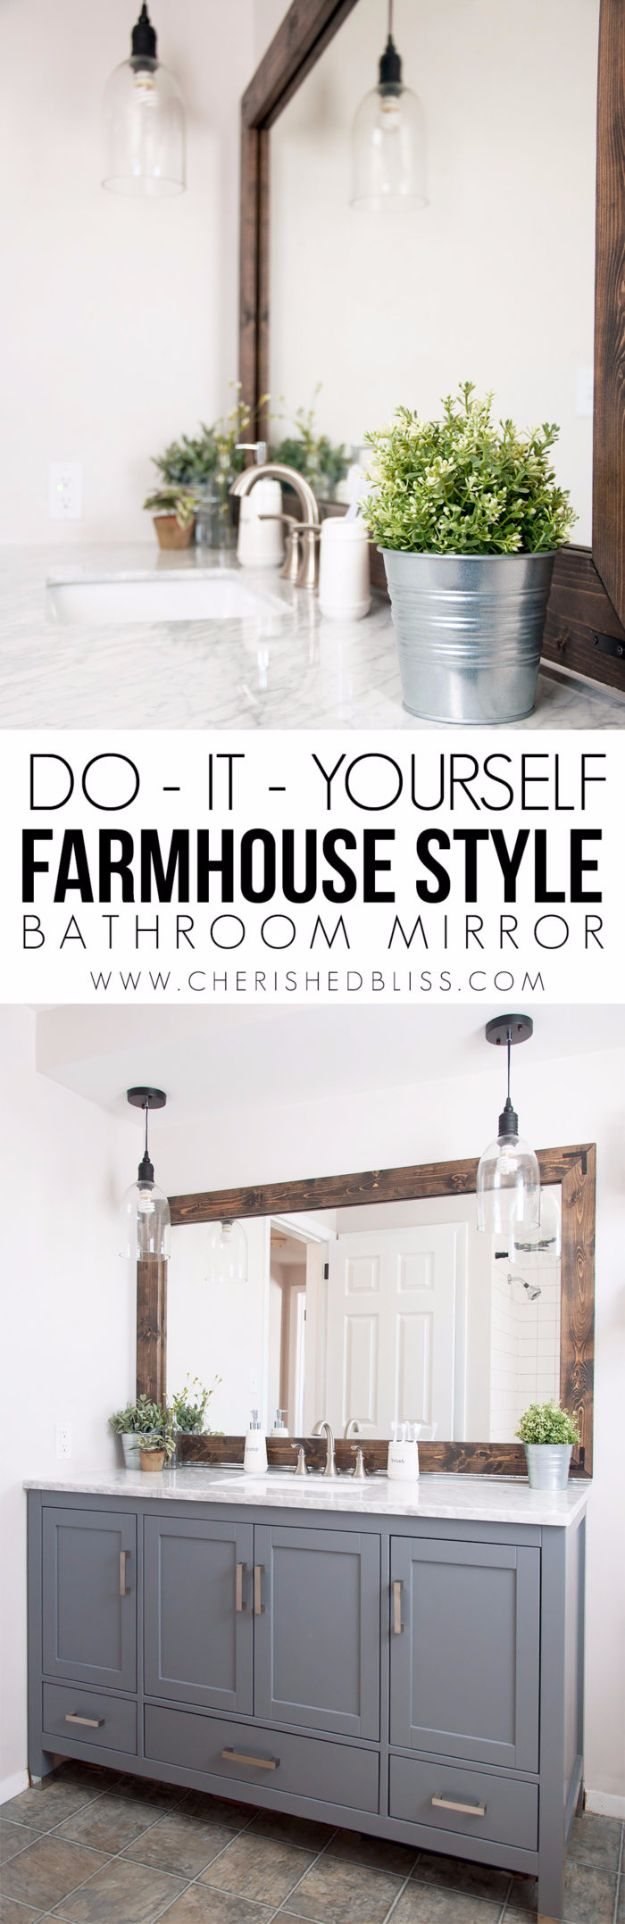 Best 25+ Farmhouse paint colors ideas on Pinterest | Farm house colors,  Rustic farmhouse decor and Rustic farmhouse